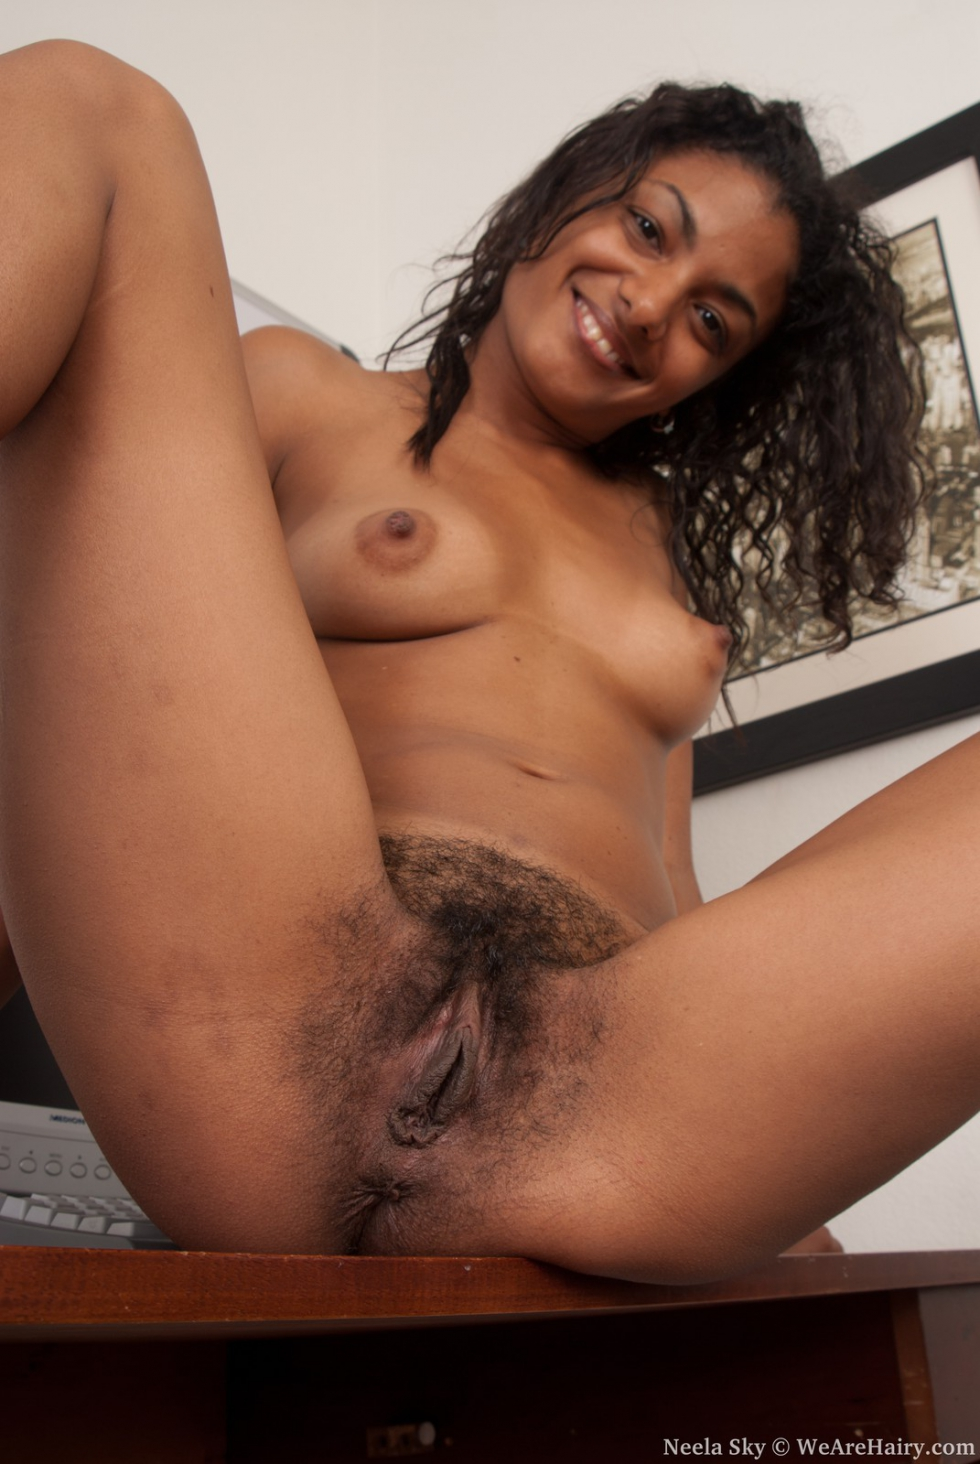 from Ezra hot chick hairy ass